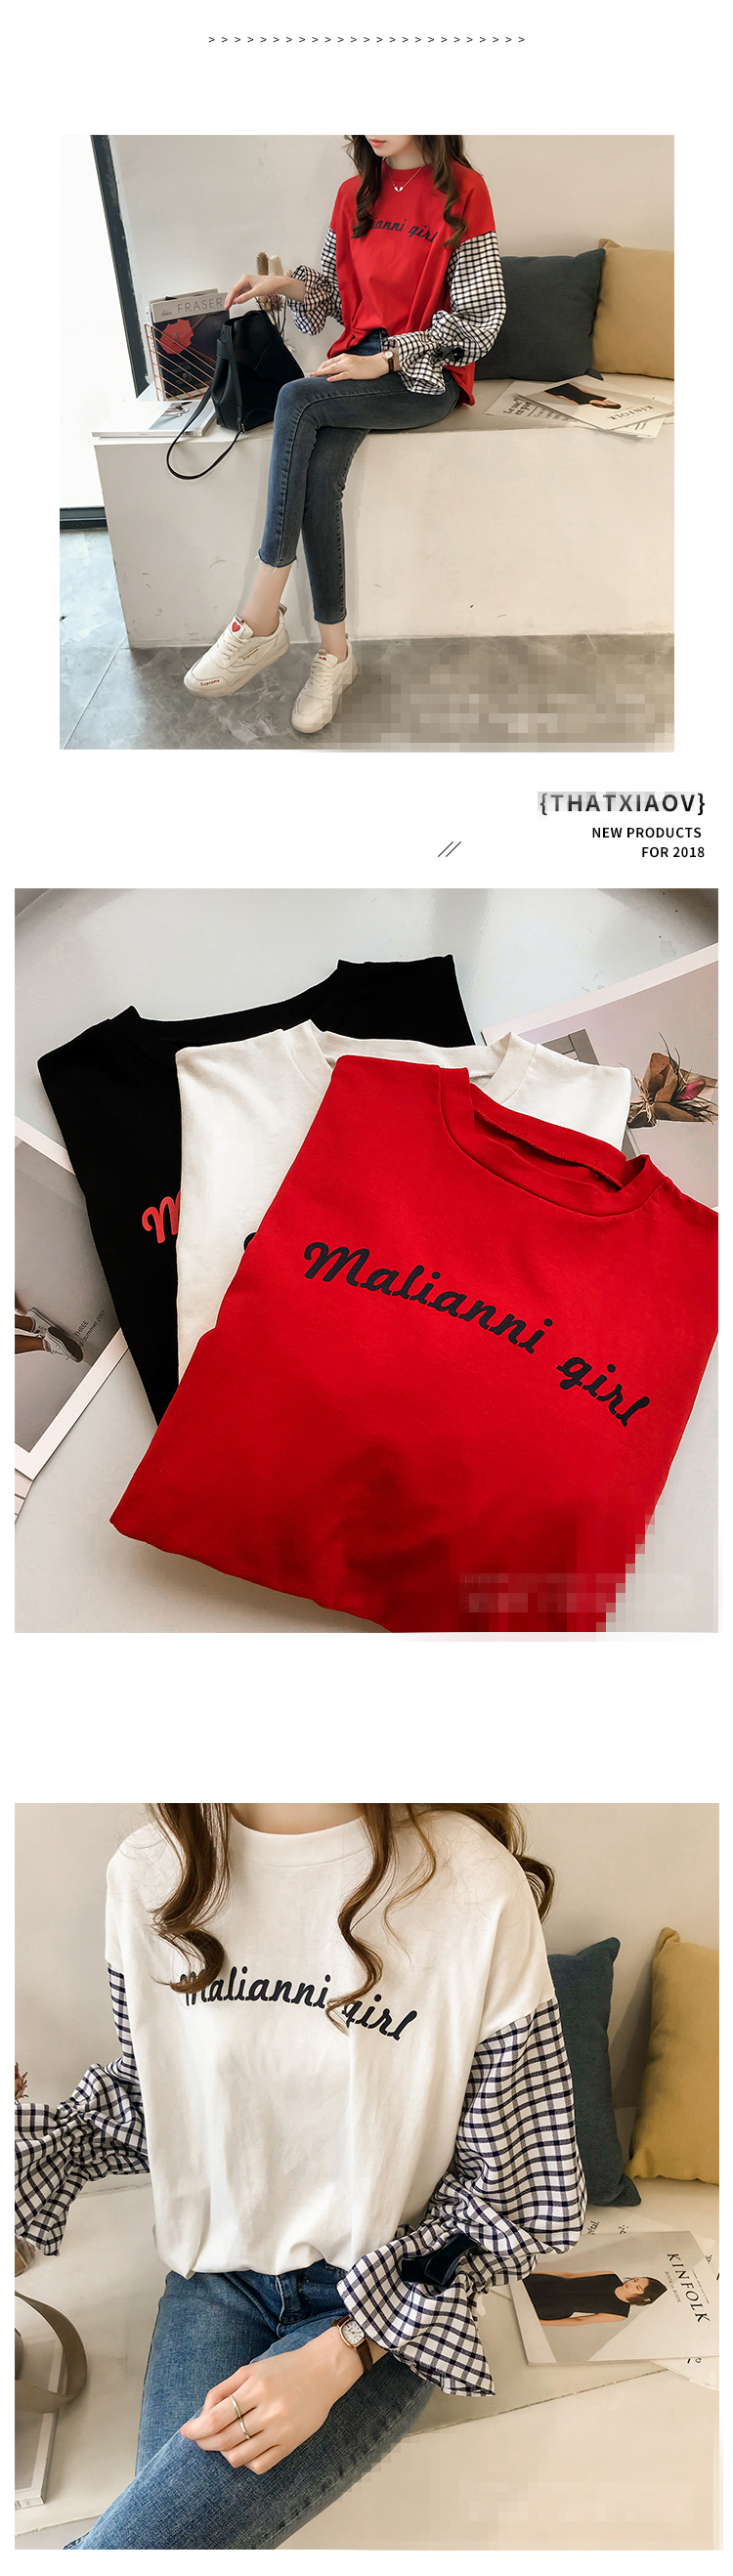 M-4xl Plus Size Cotton Casual T-shirts Women Plaid Patchwork Flare Sleeve O-neck Tshirts Harajuku Fake Two Piece Loose Tees Tops 13 Online shopping Bangladesh